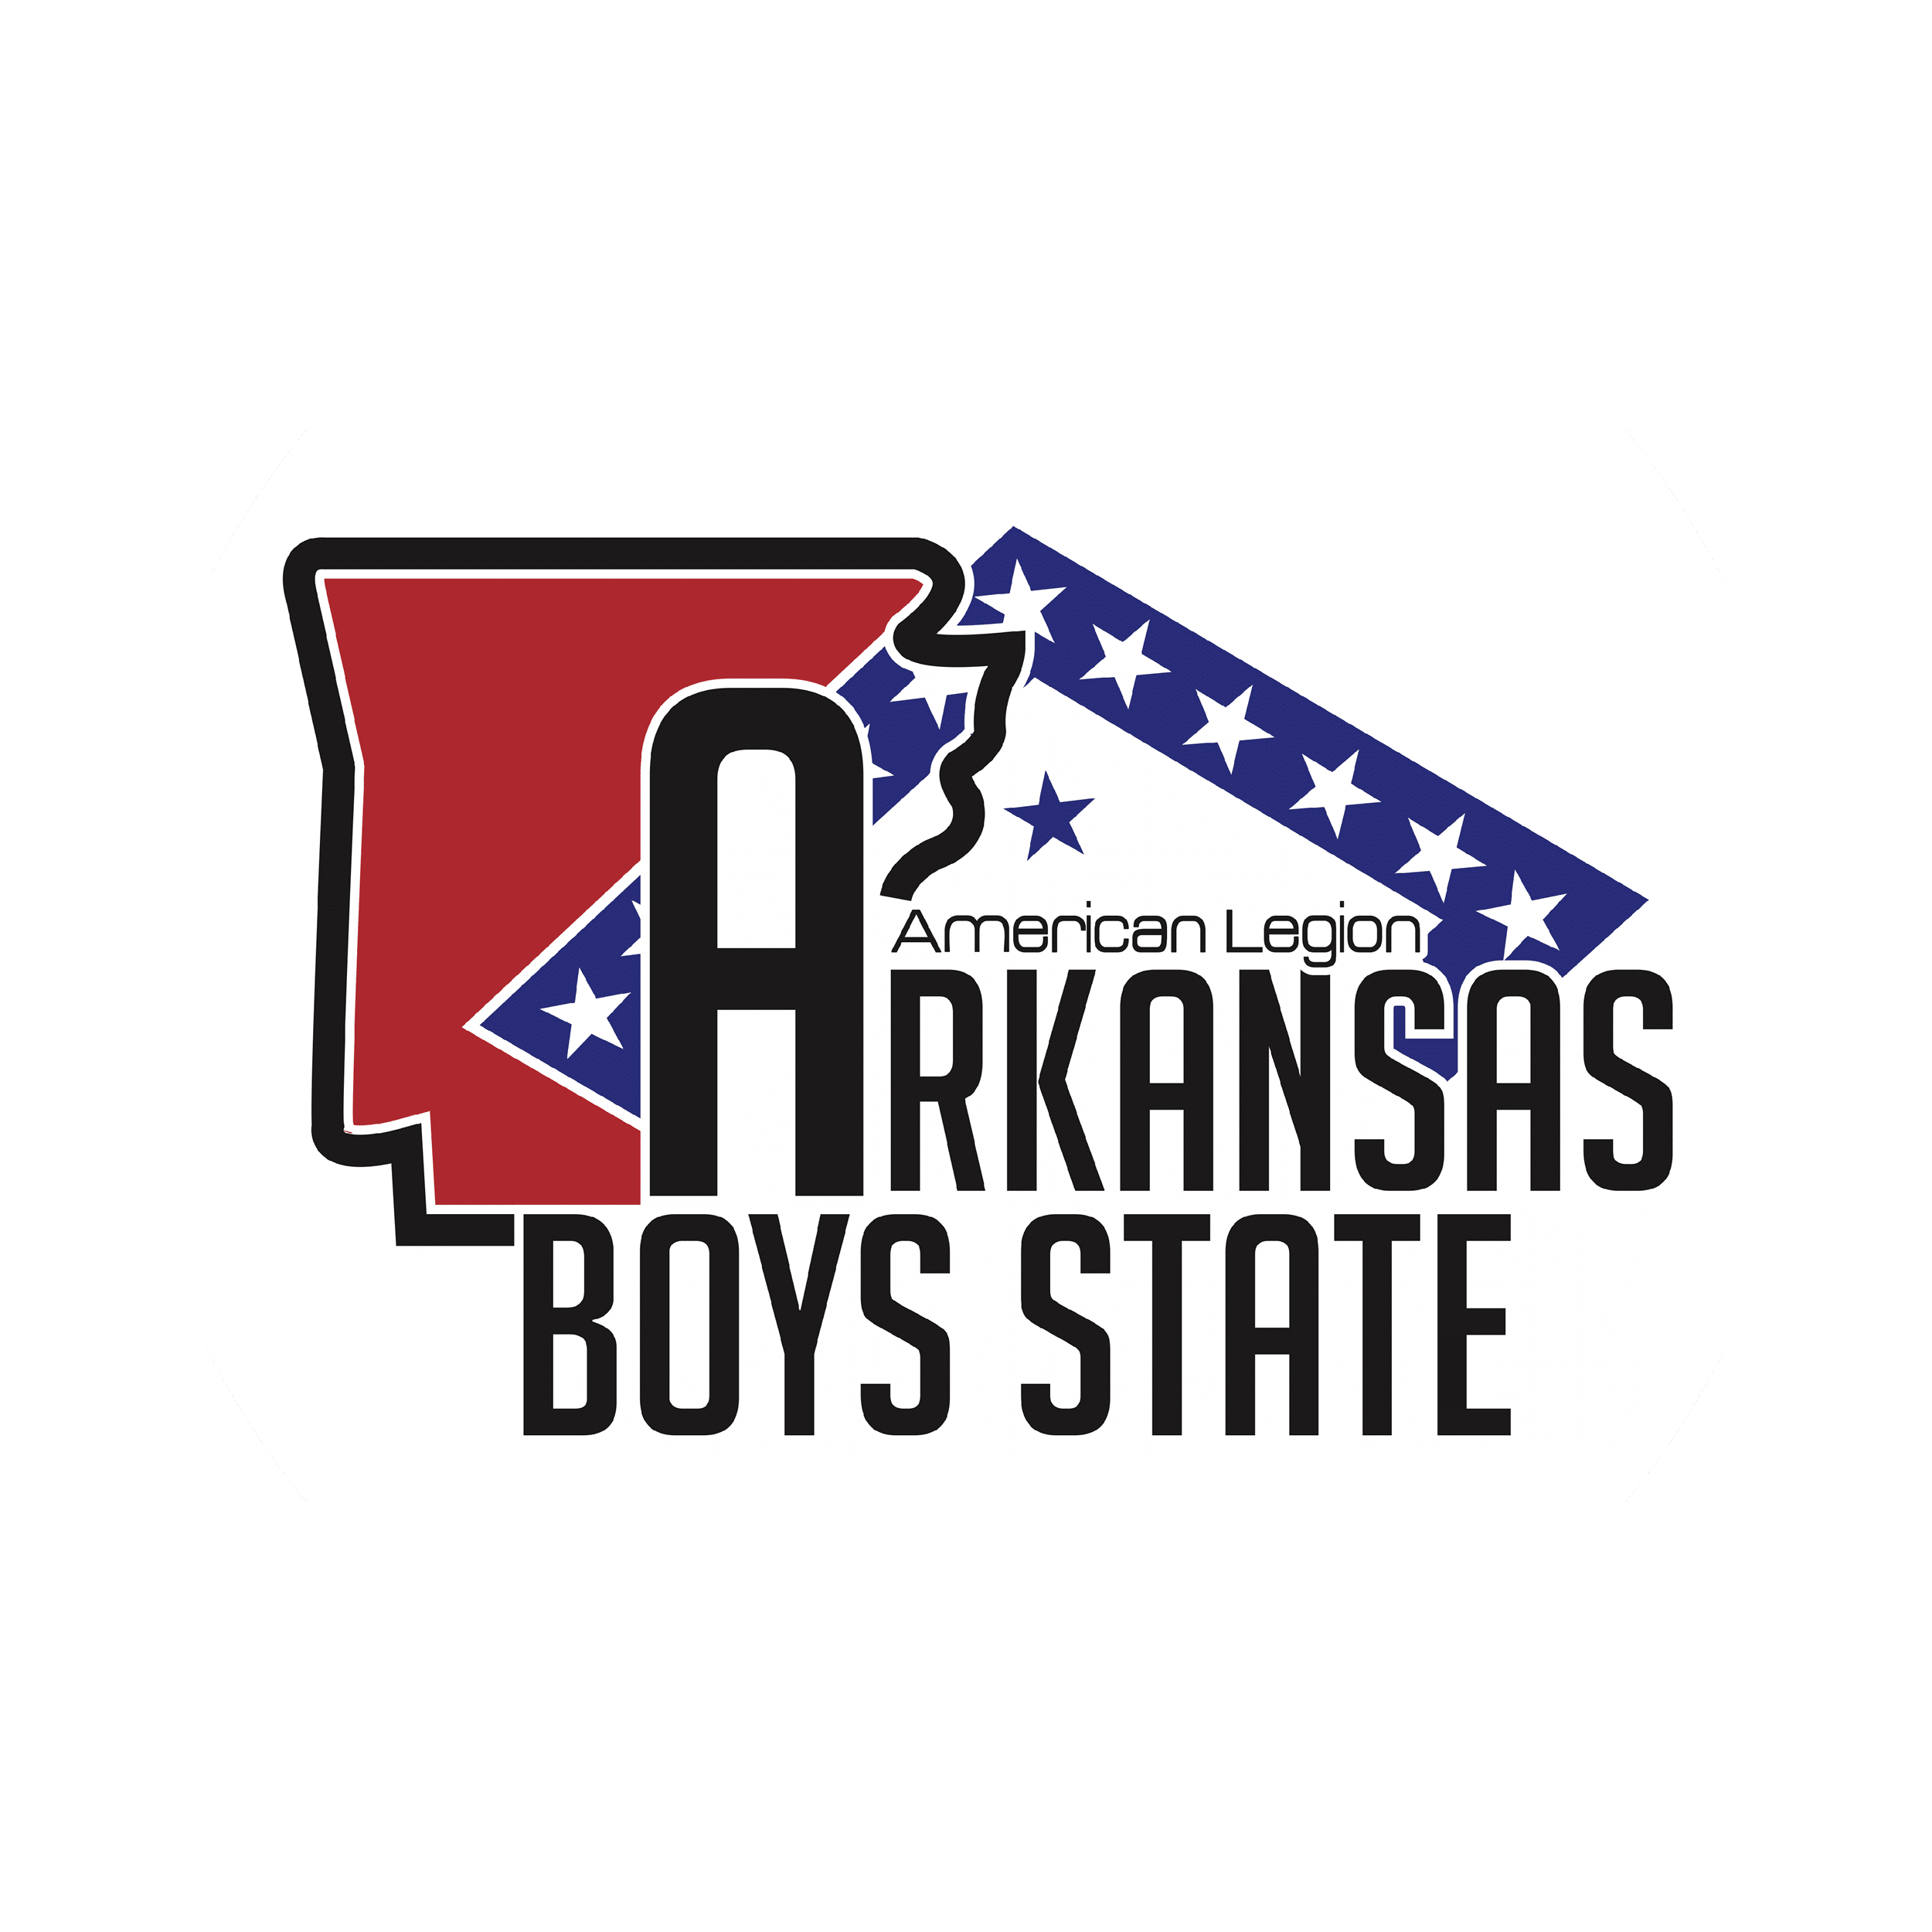 Arkansas Boys State